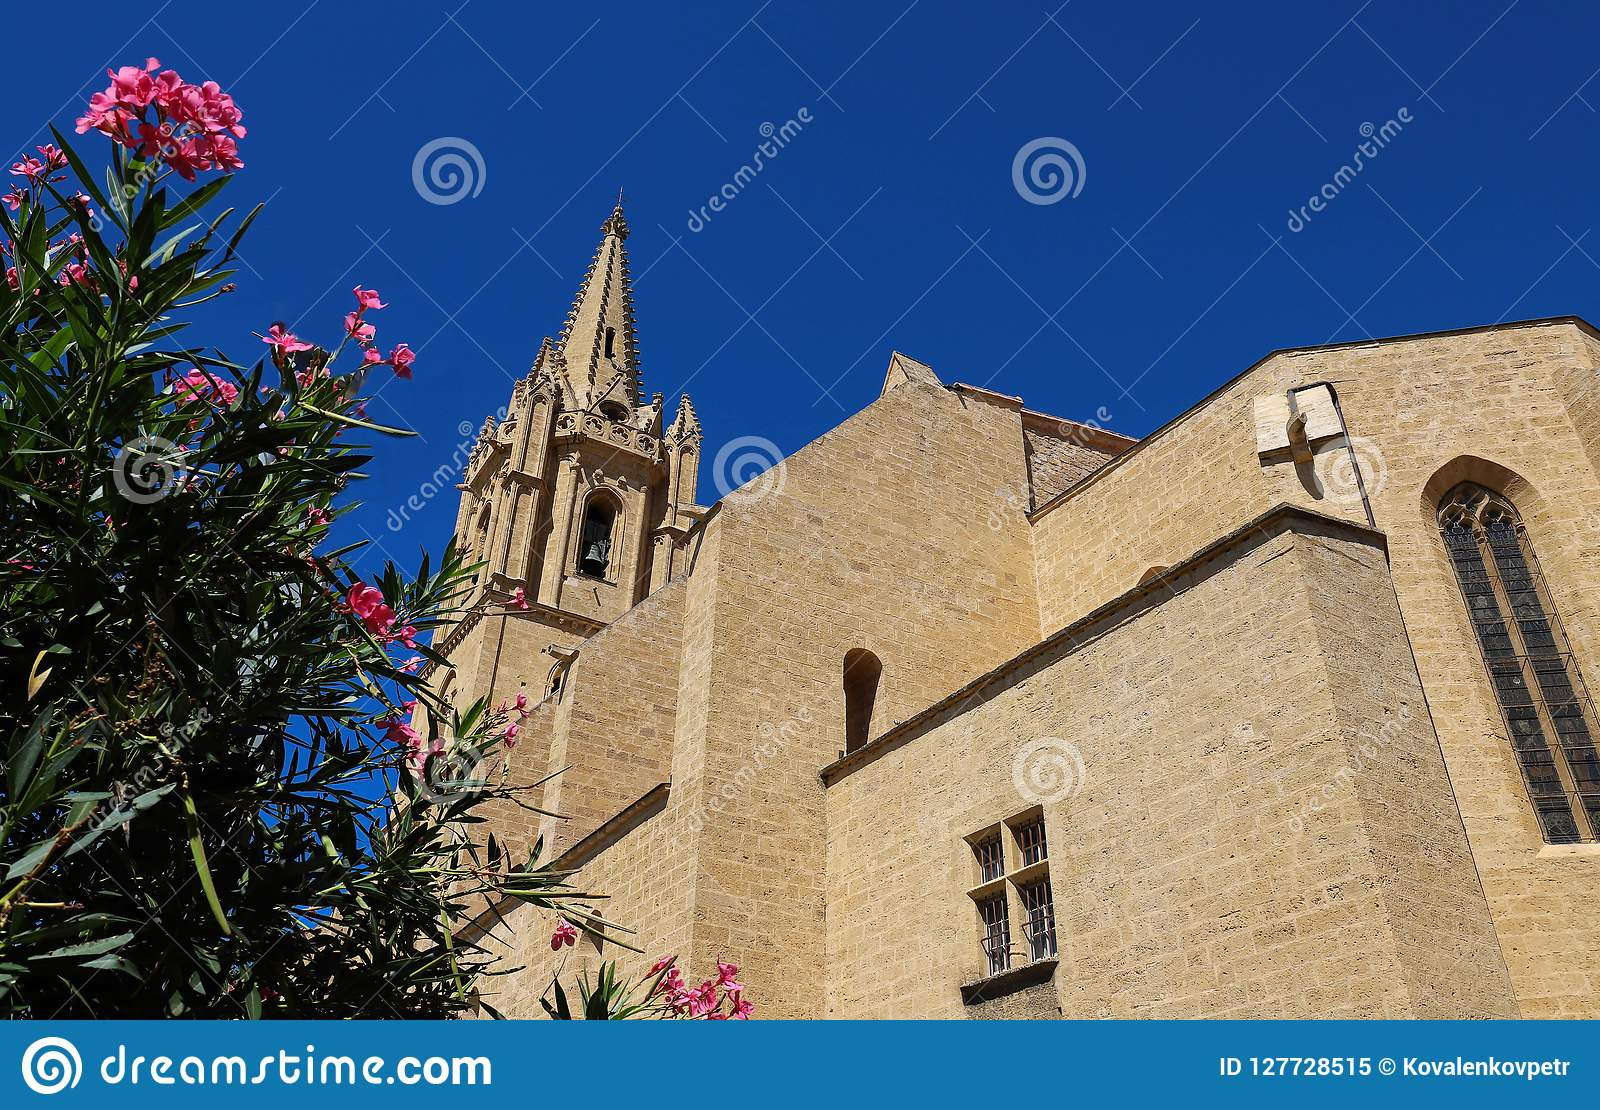 The Collegial Church Saint Laurent Is An Excellent Example Of France S Meridional Gothic Style Salon De Provence France Stock Image Image Of City France 127728515